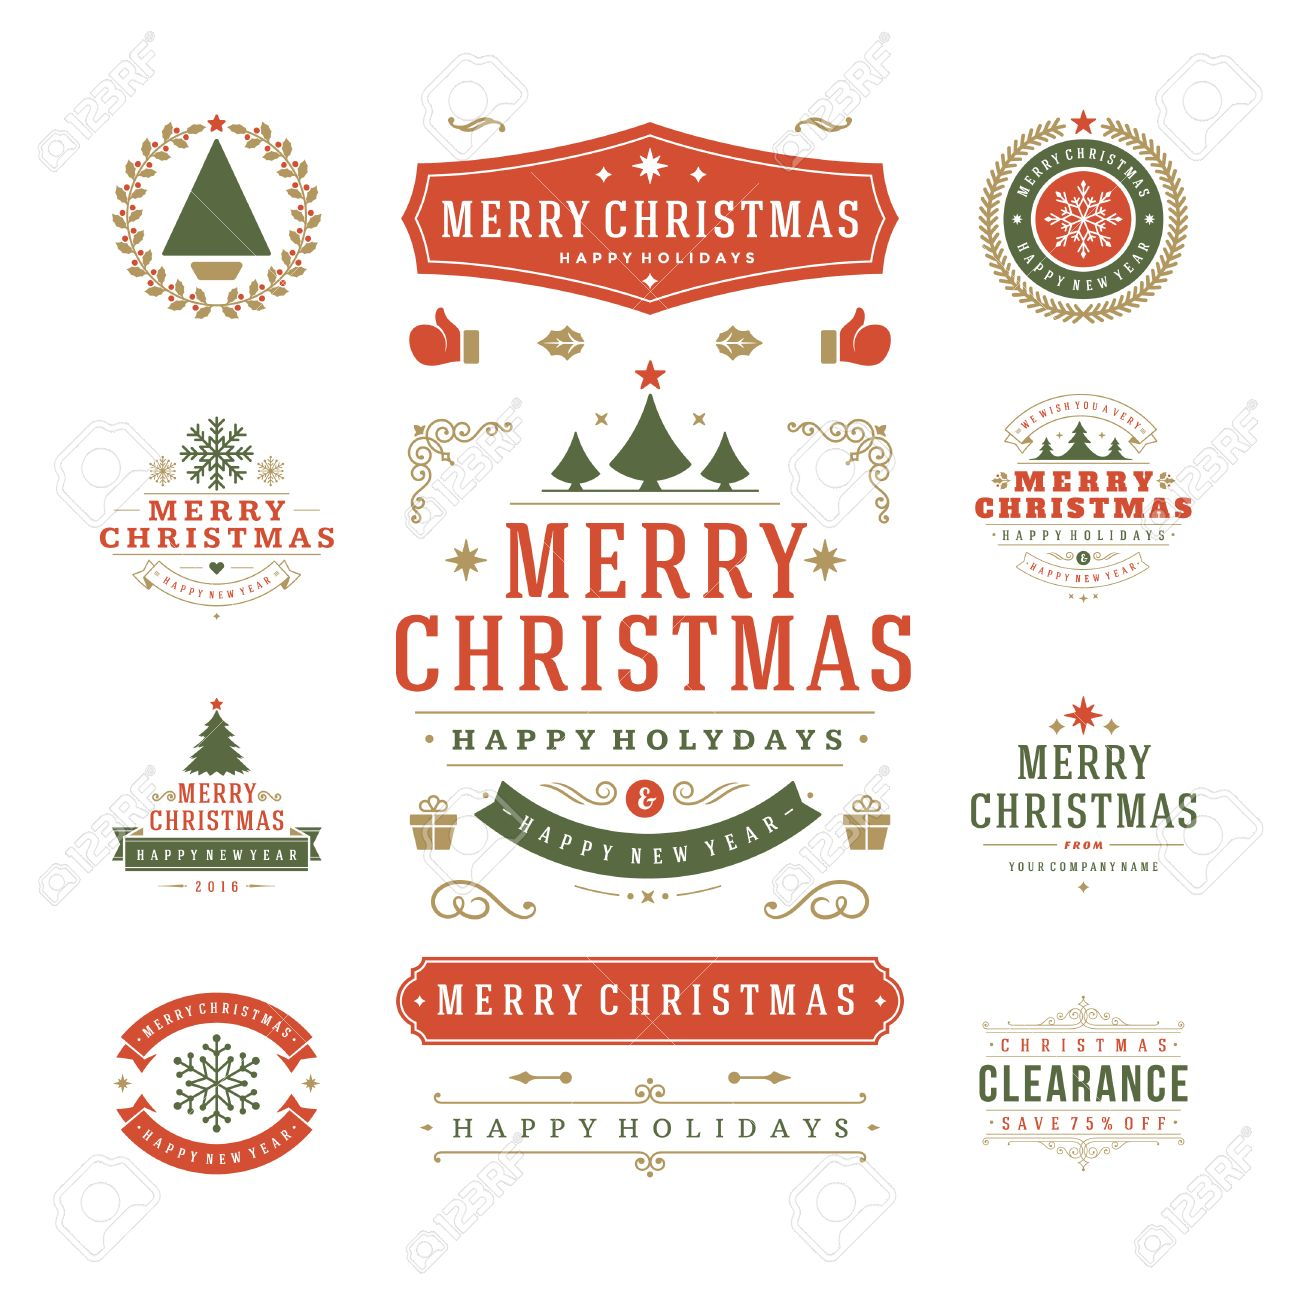 Christmas Labels and Badges Vector Design. Decorations elements, Symbols, Icons, Frames, Ornaments and Ribbons, set. Typographic Merry Christmas and Happy Holidays wishes. - 47615849